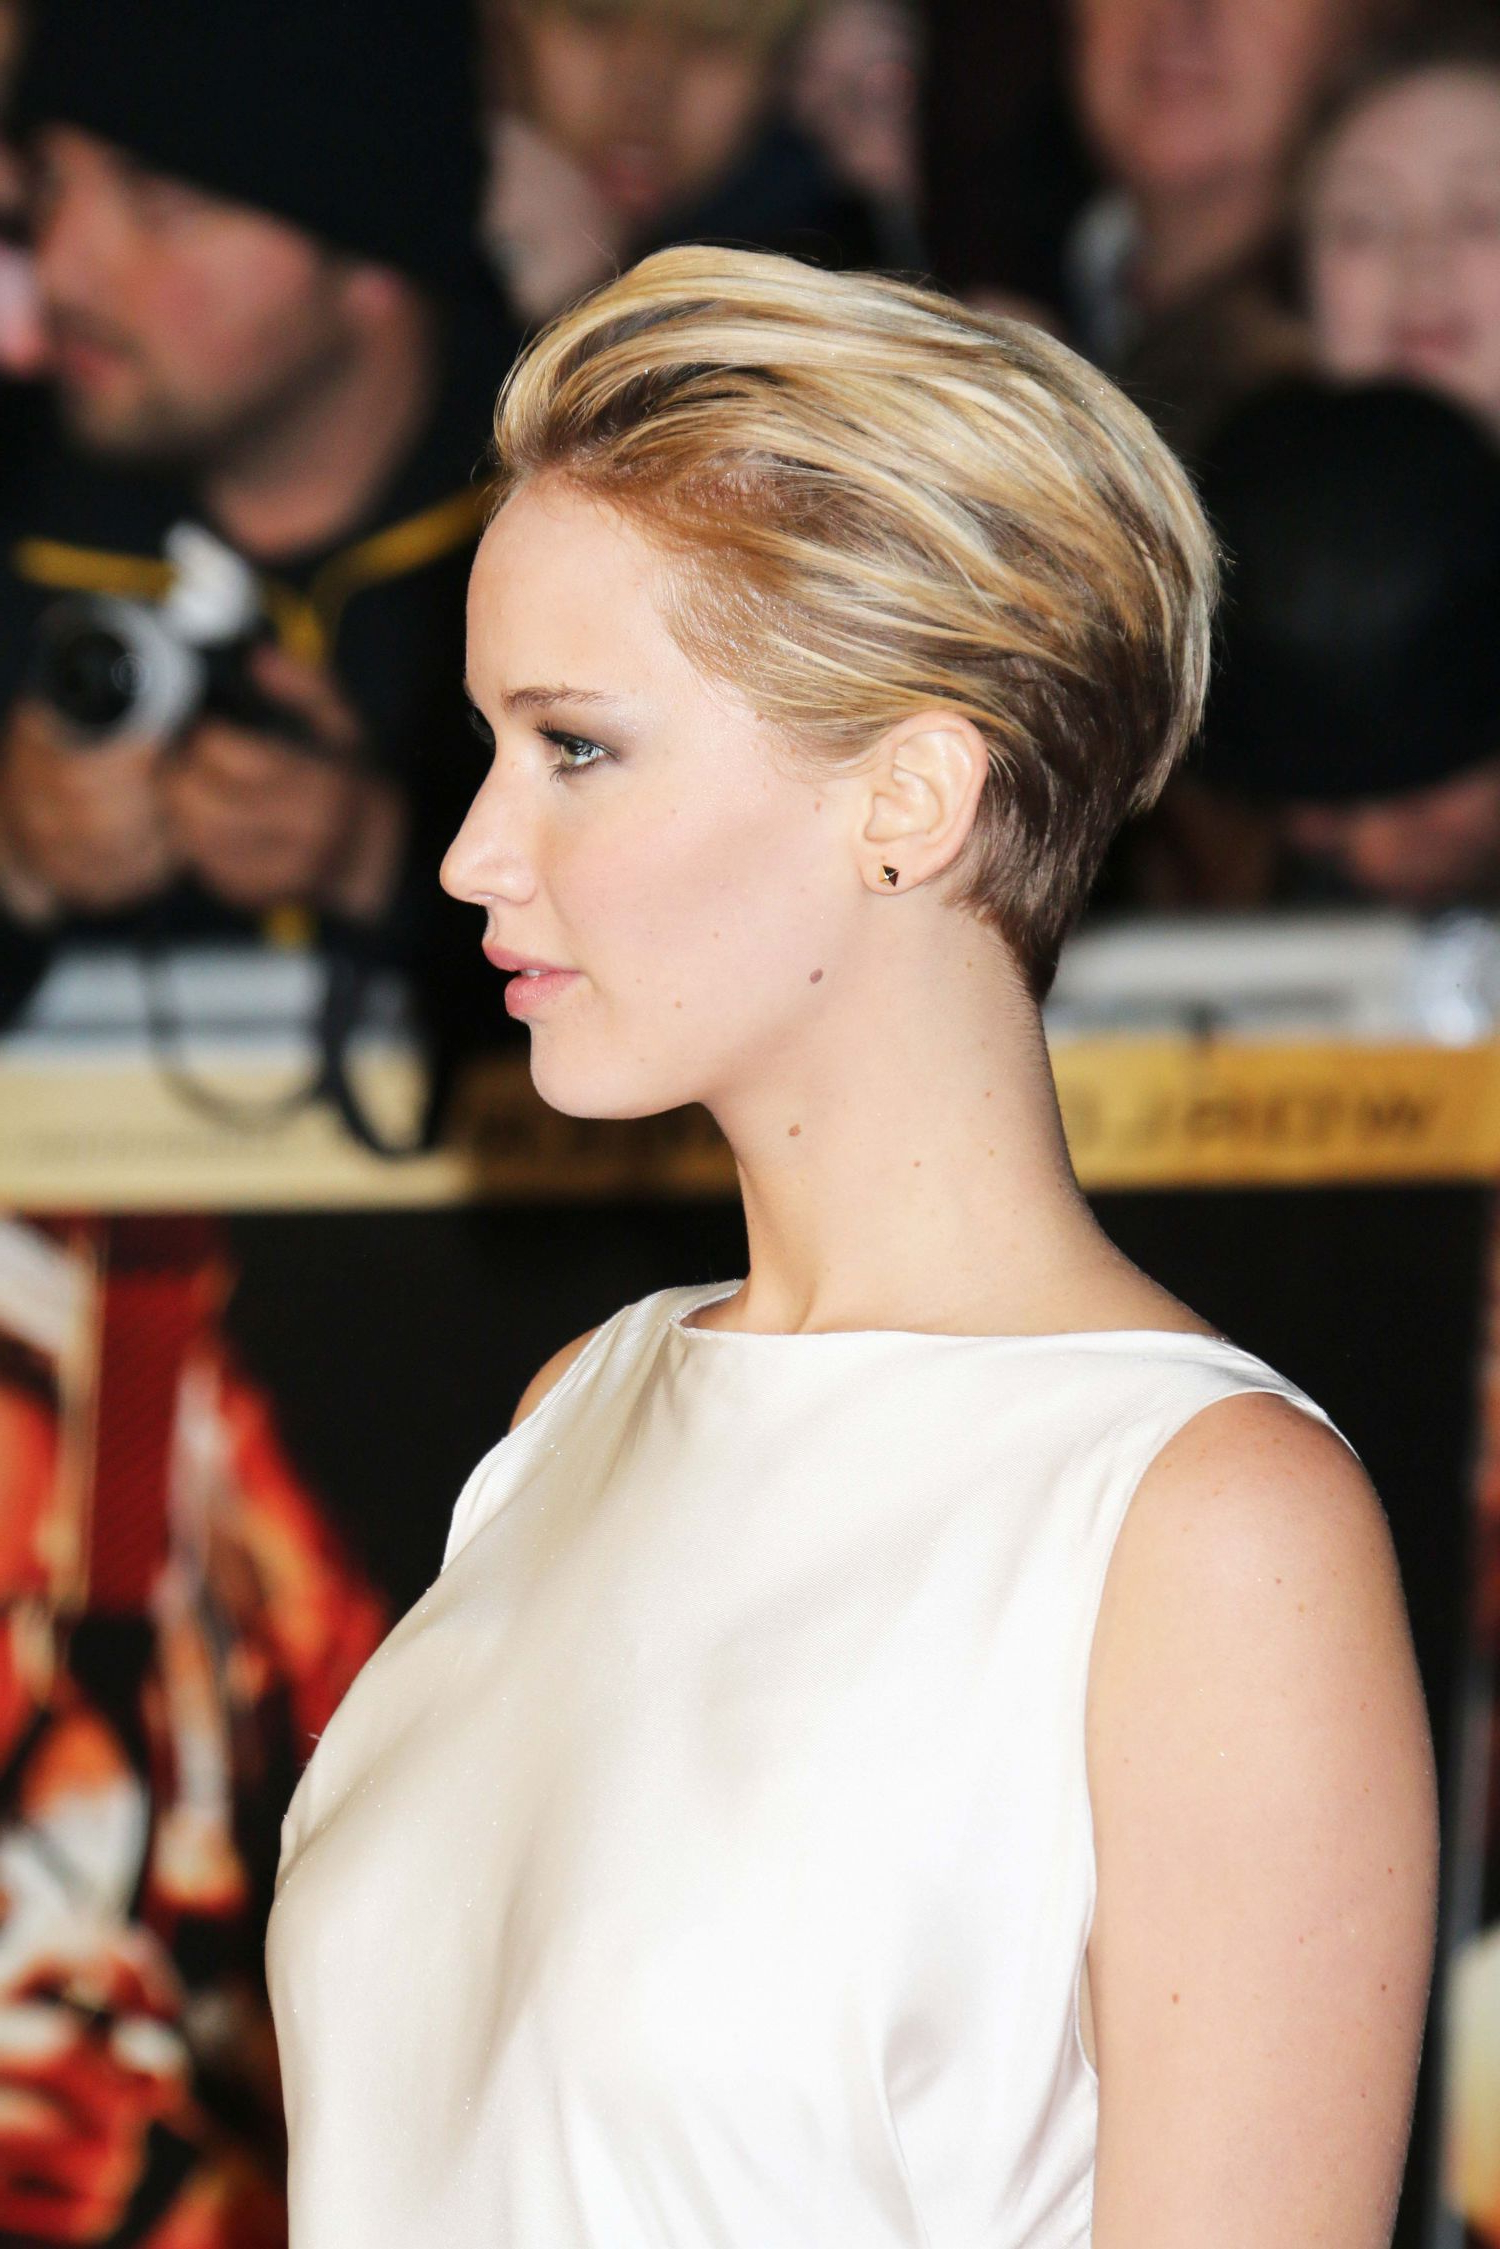 Pixie Evening Look. Jennifer Lawrence (View 17 of 25)